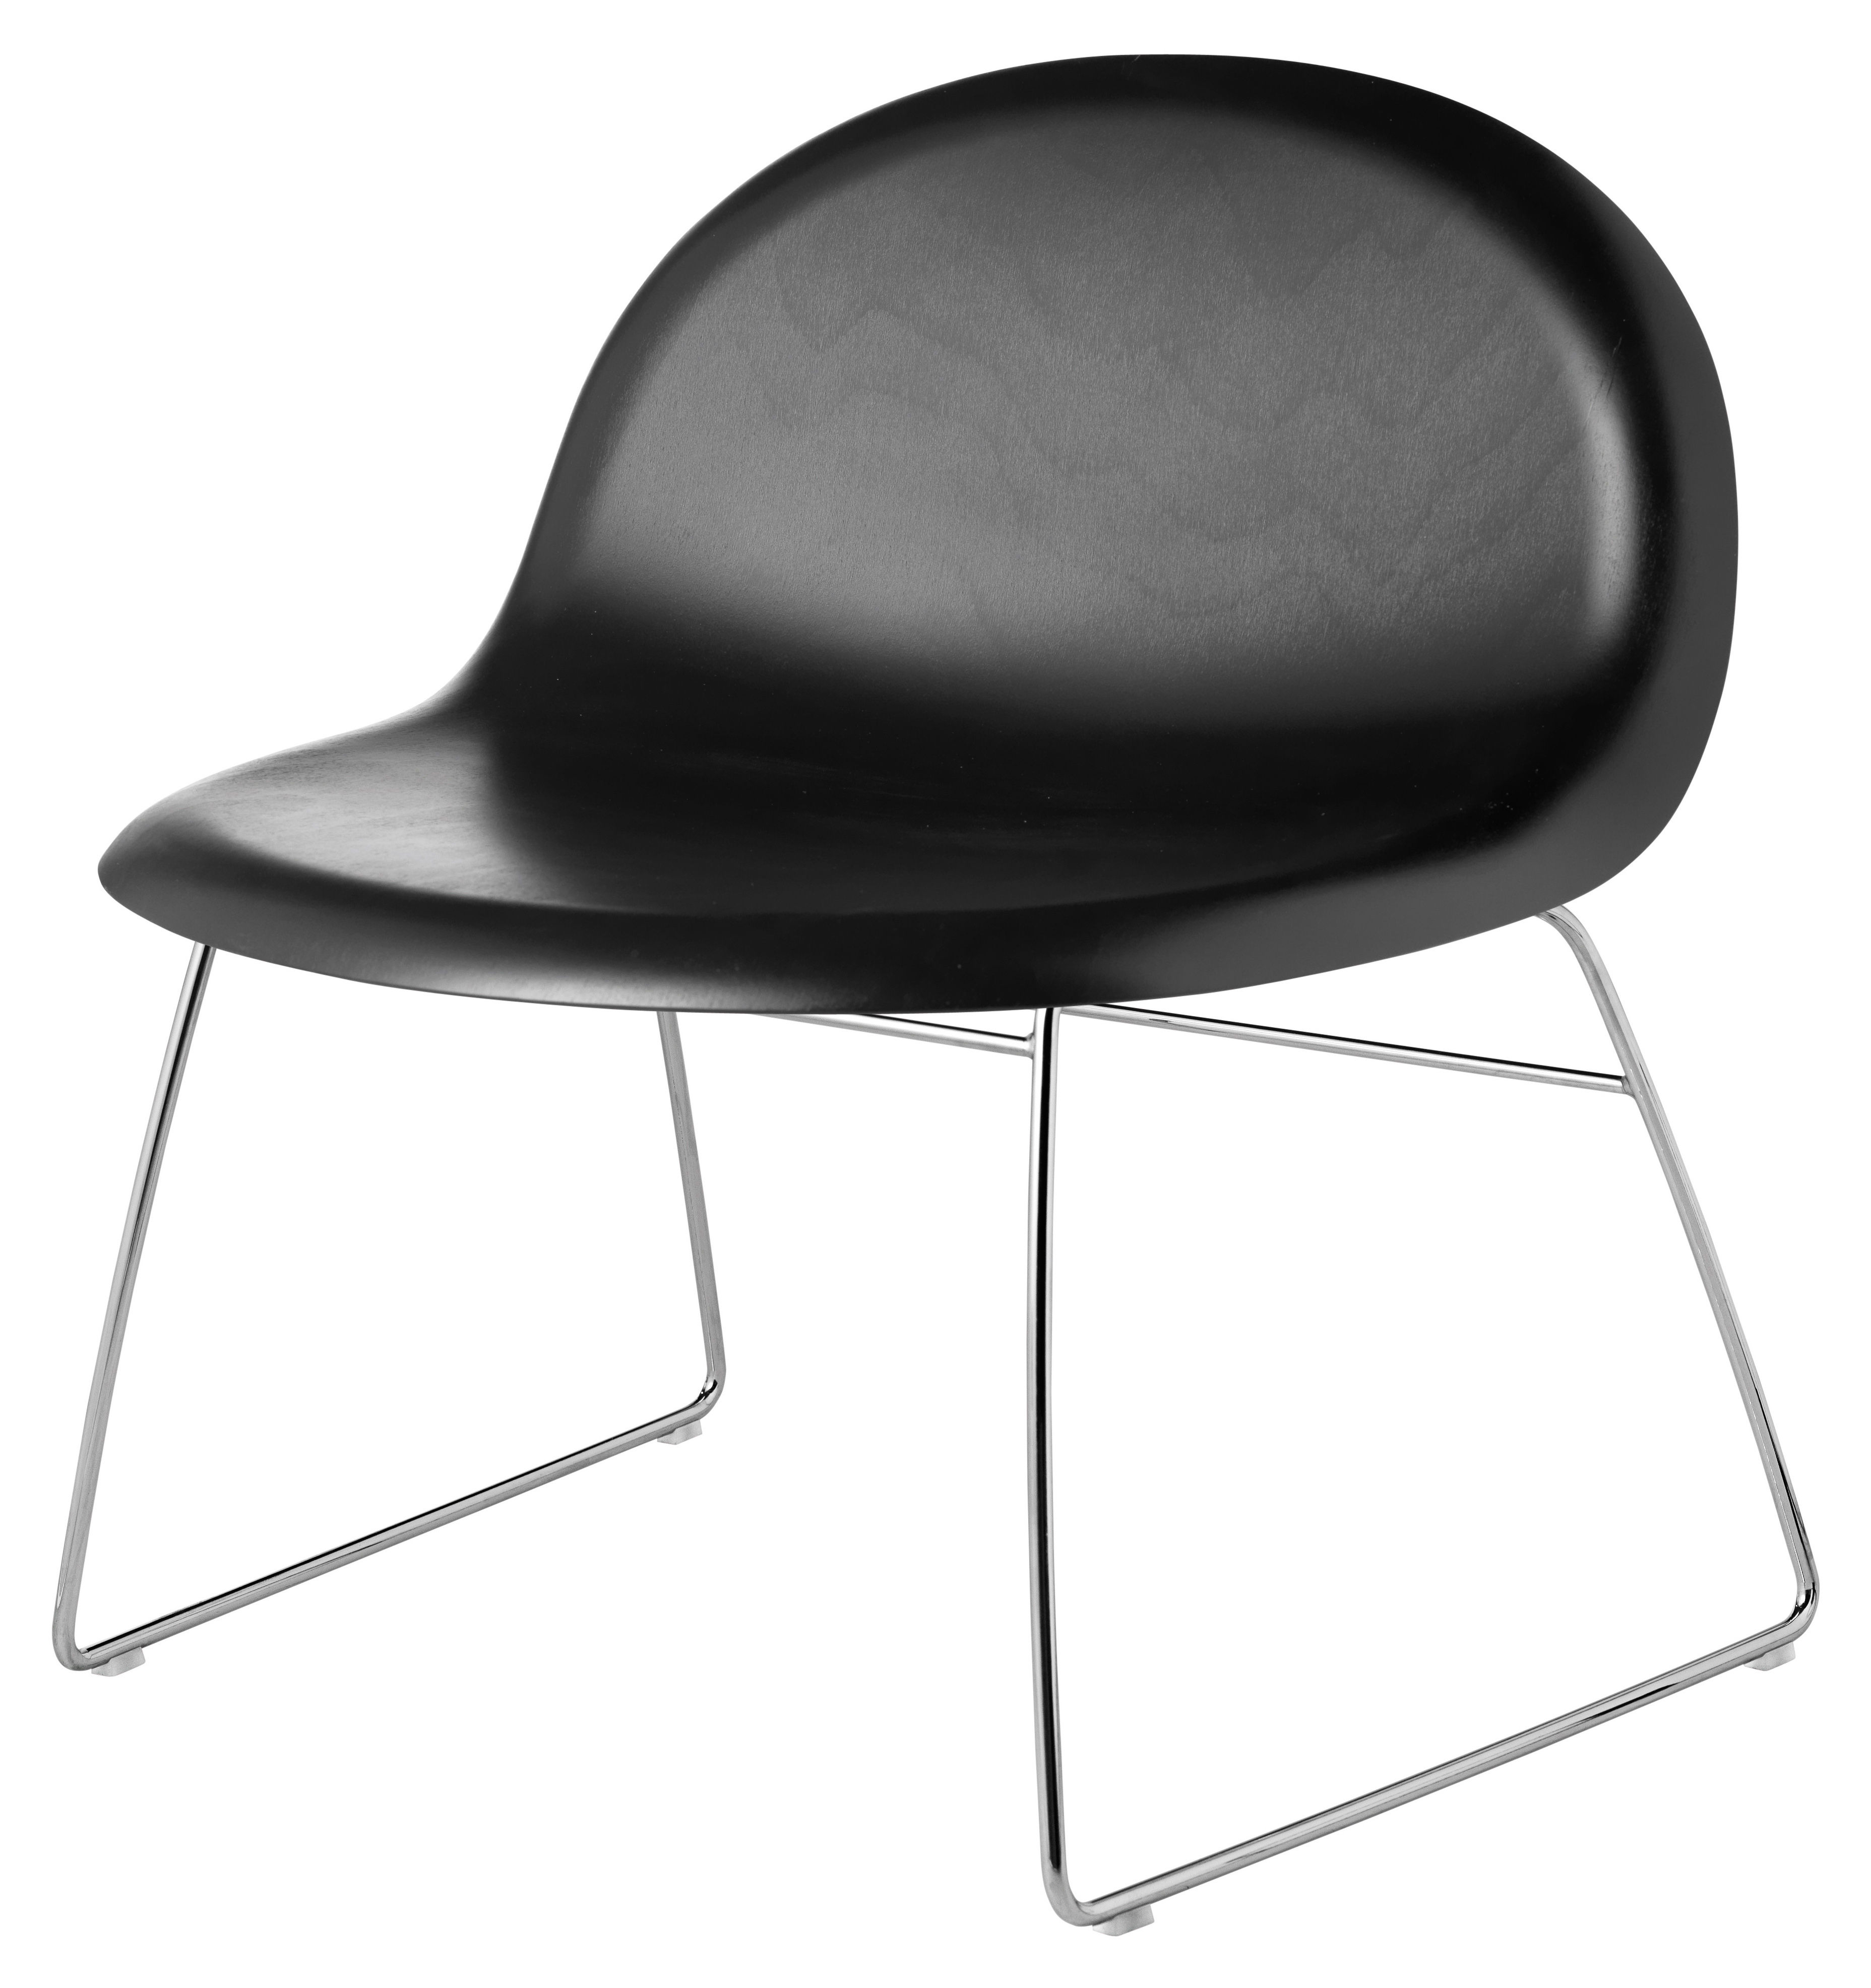 Furniture - Armchairs - 3D Low armchair - H 40 cm - Sledge - Wood seat by Gubi - Black - Chromed steel, Tinted beechwood